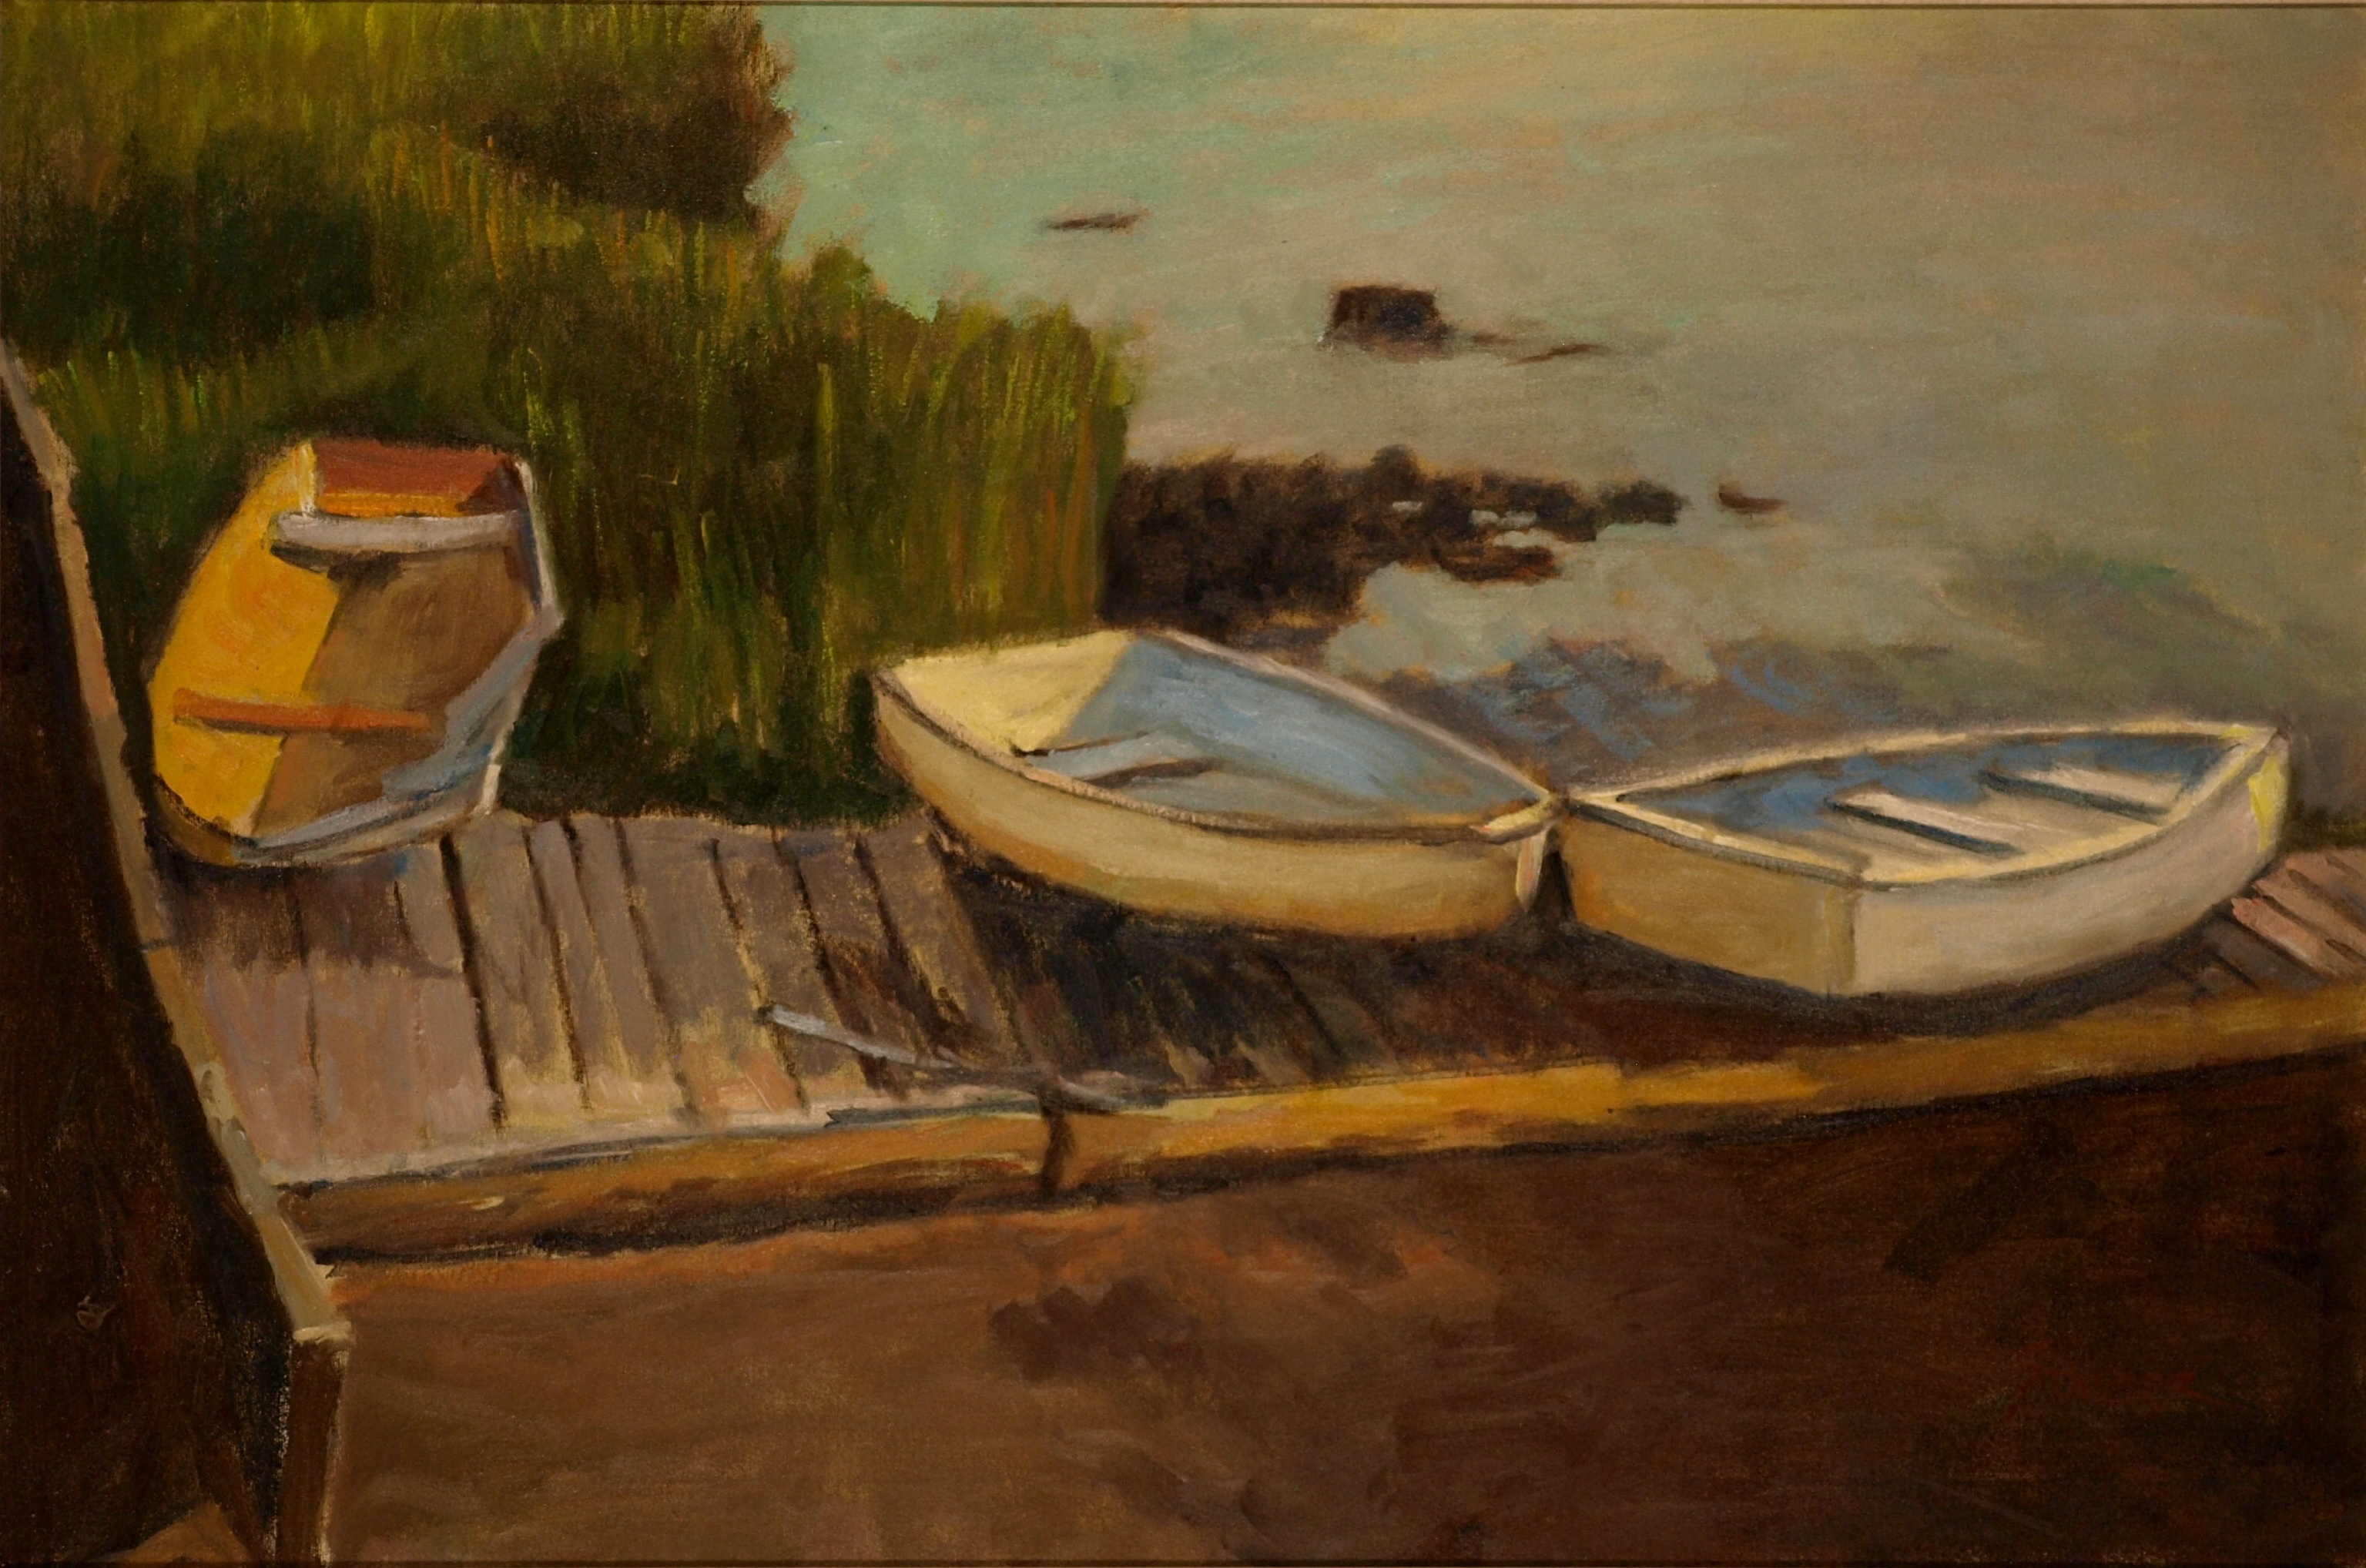 Rowboats on Dock, Oil on Canvas, 24 x 36 Inches, by Richard Stalter, $1200